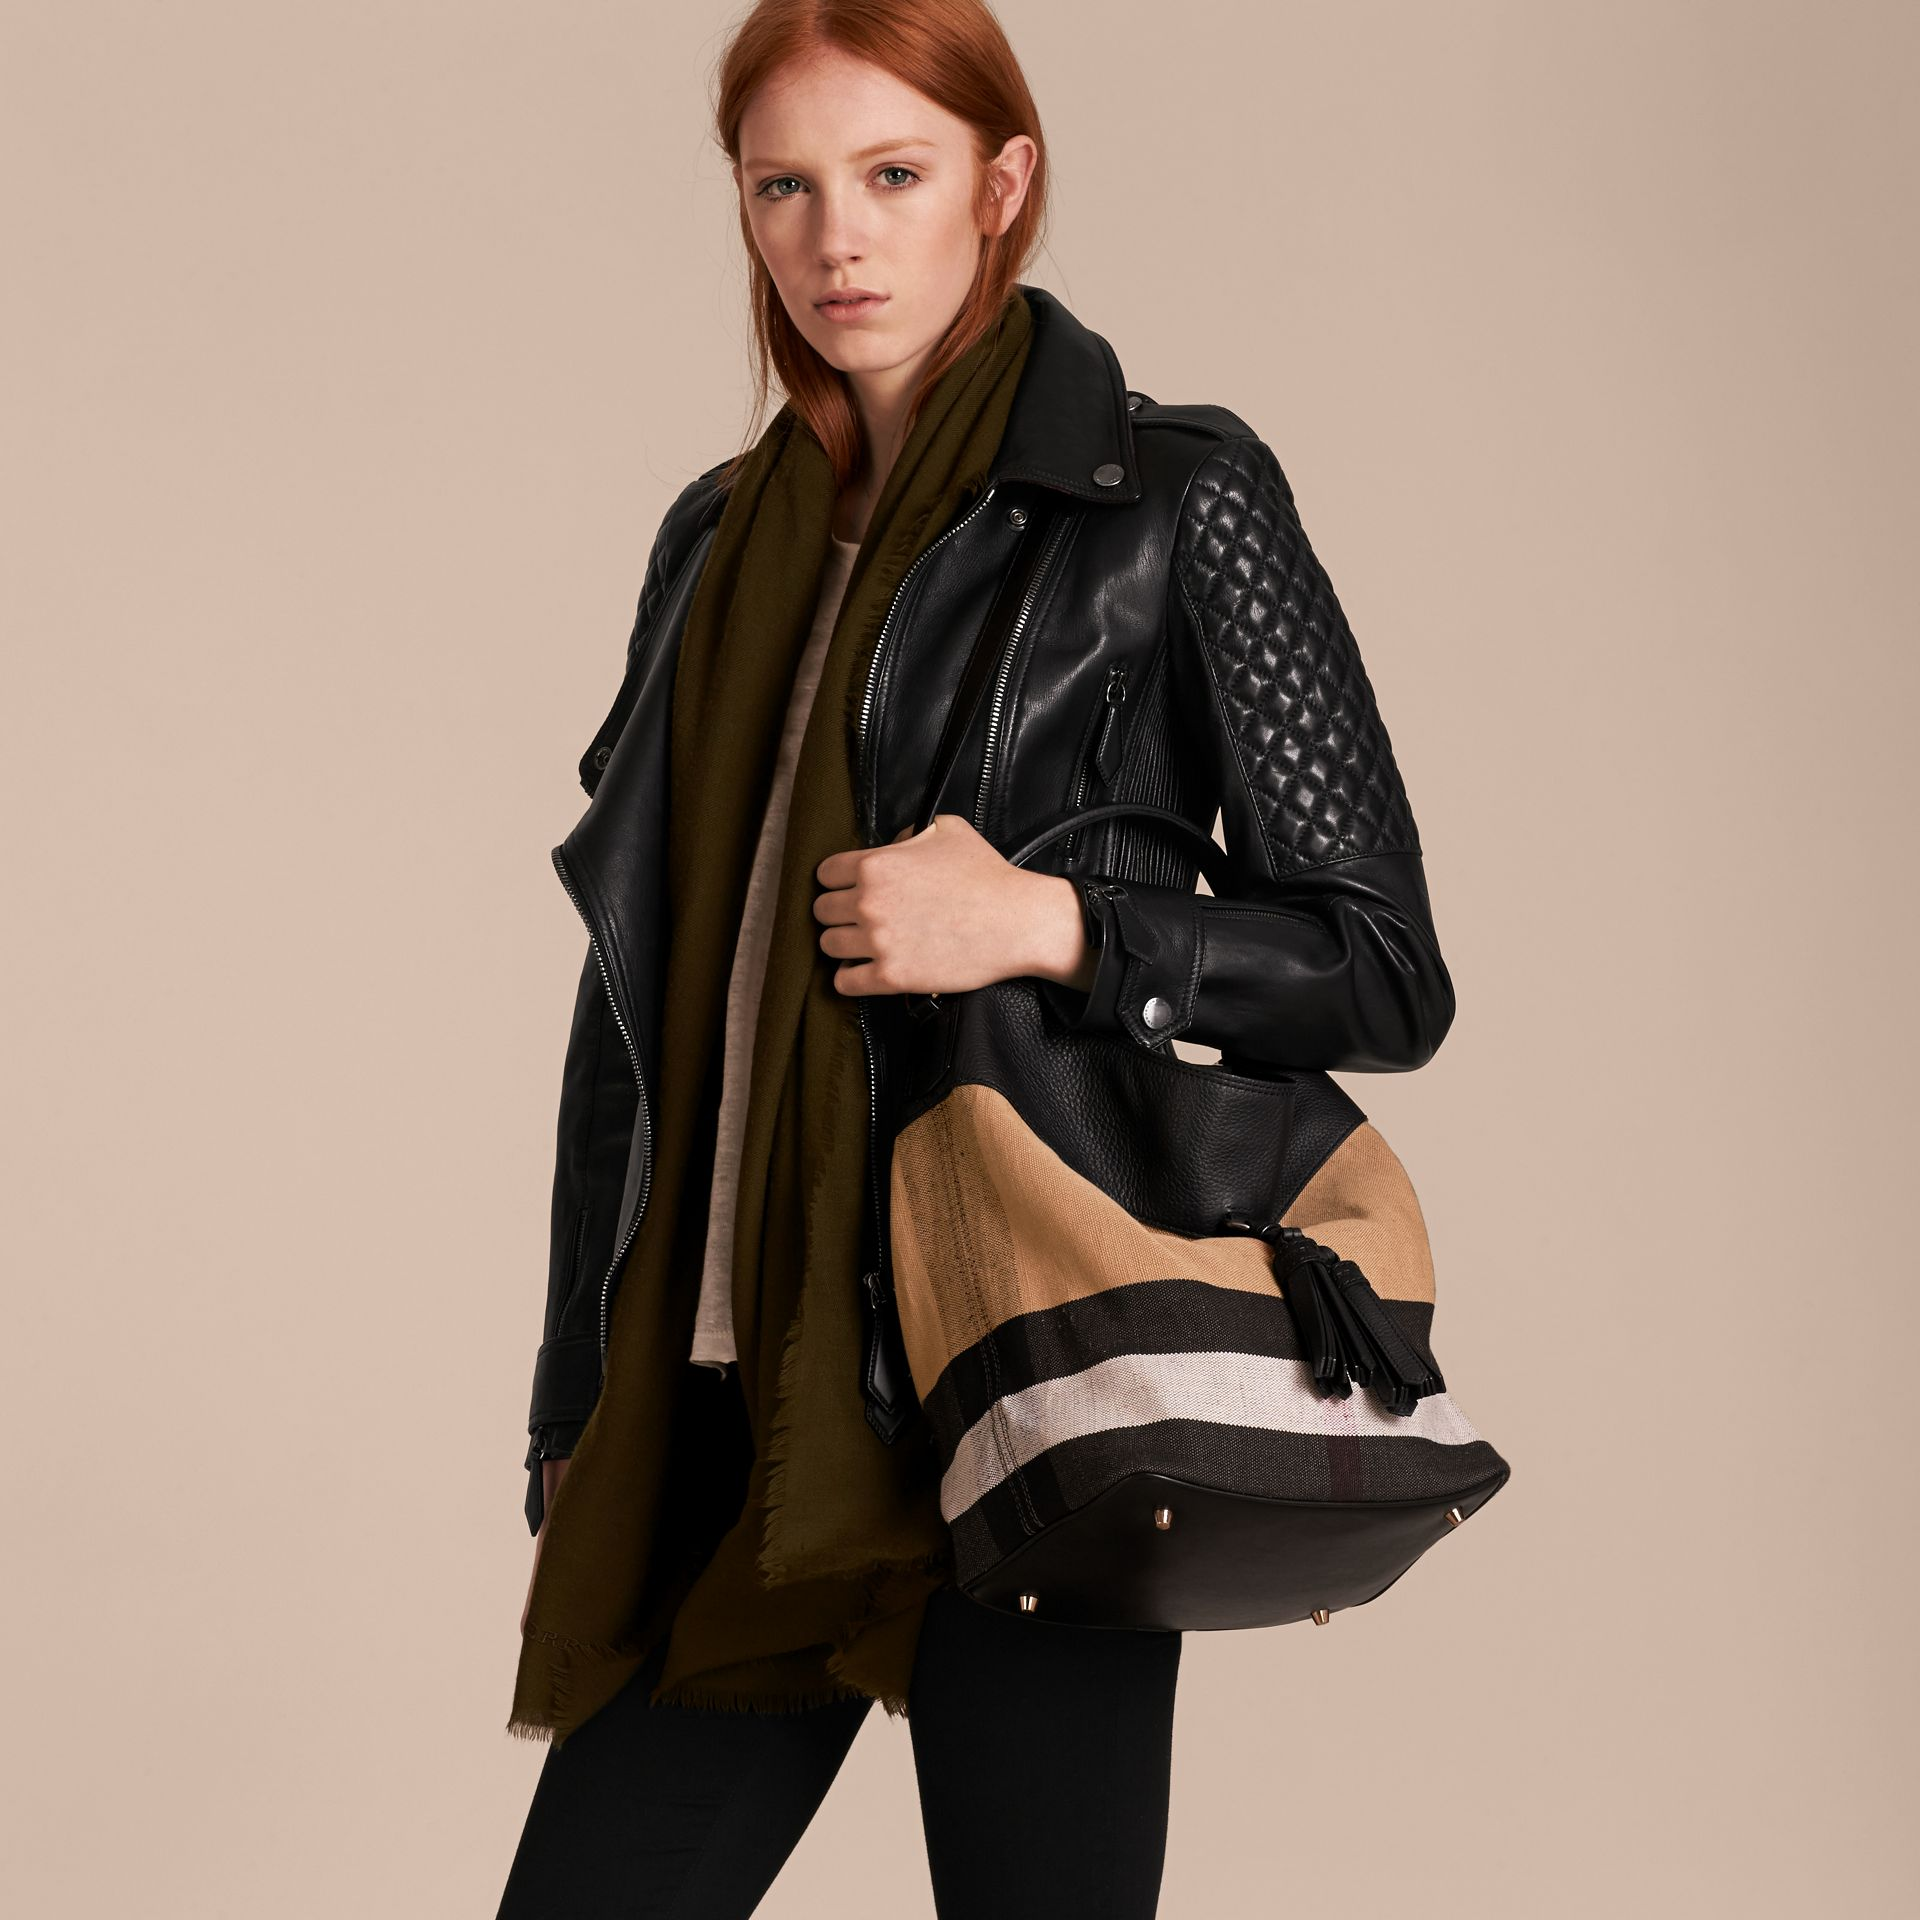 Sac The Ashby medium en toile Canvas check et cuir Noir/noir - photo de la galerie 4